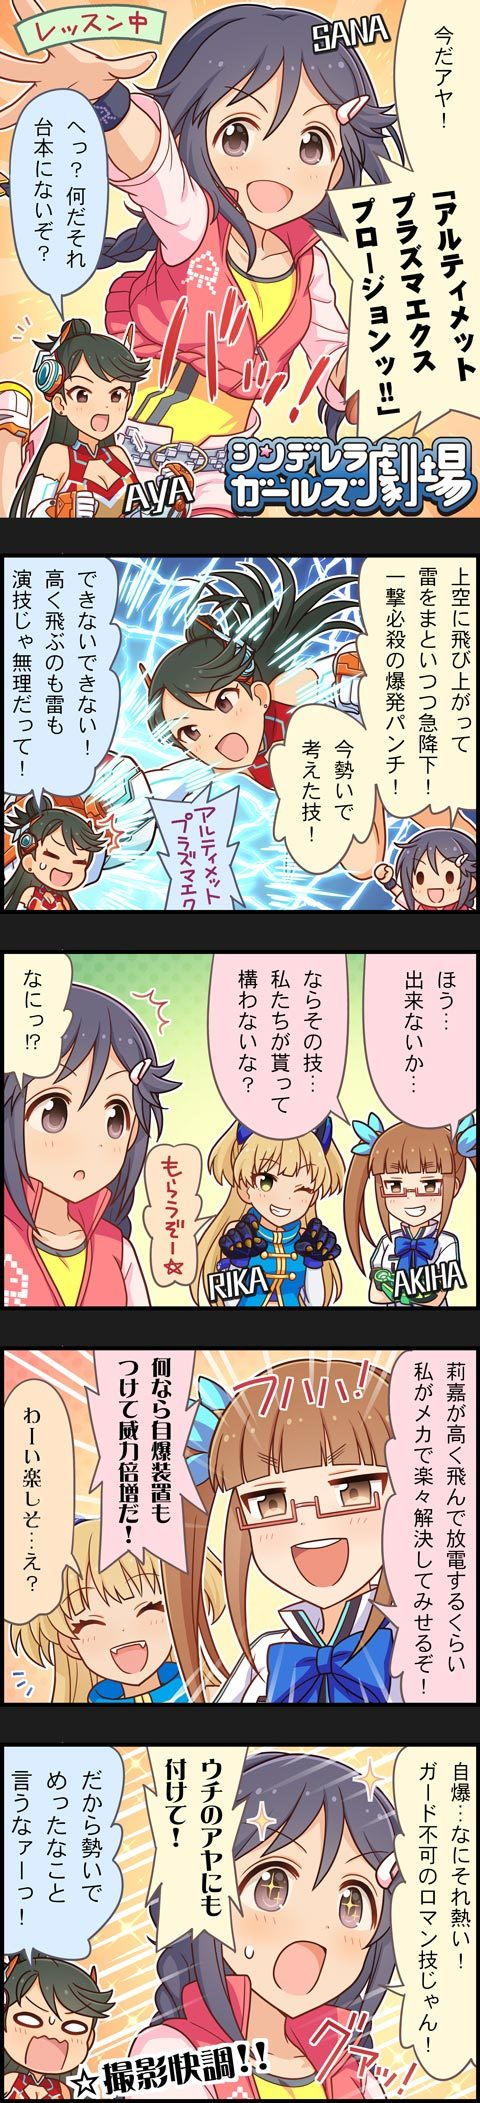 5koma black_hair blonde_hair braid brown_eyes brown_hair character_name comic glasses green_eyes hair_bun hair_ornament hairclip highres idolmaster idolmaster_cinderella_girls ikebukuro_akiha jougasaki_rika kirino_aya long_hair long_image miyoshi_sana multiple_girls official_art purple_eyes semi-rimless_eyewear tall_image translation_request twin_braids twintails two_side_up